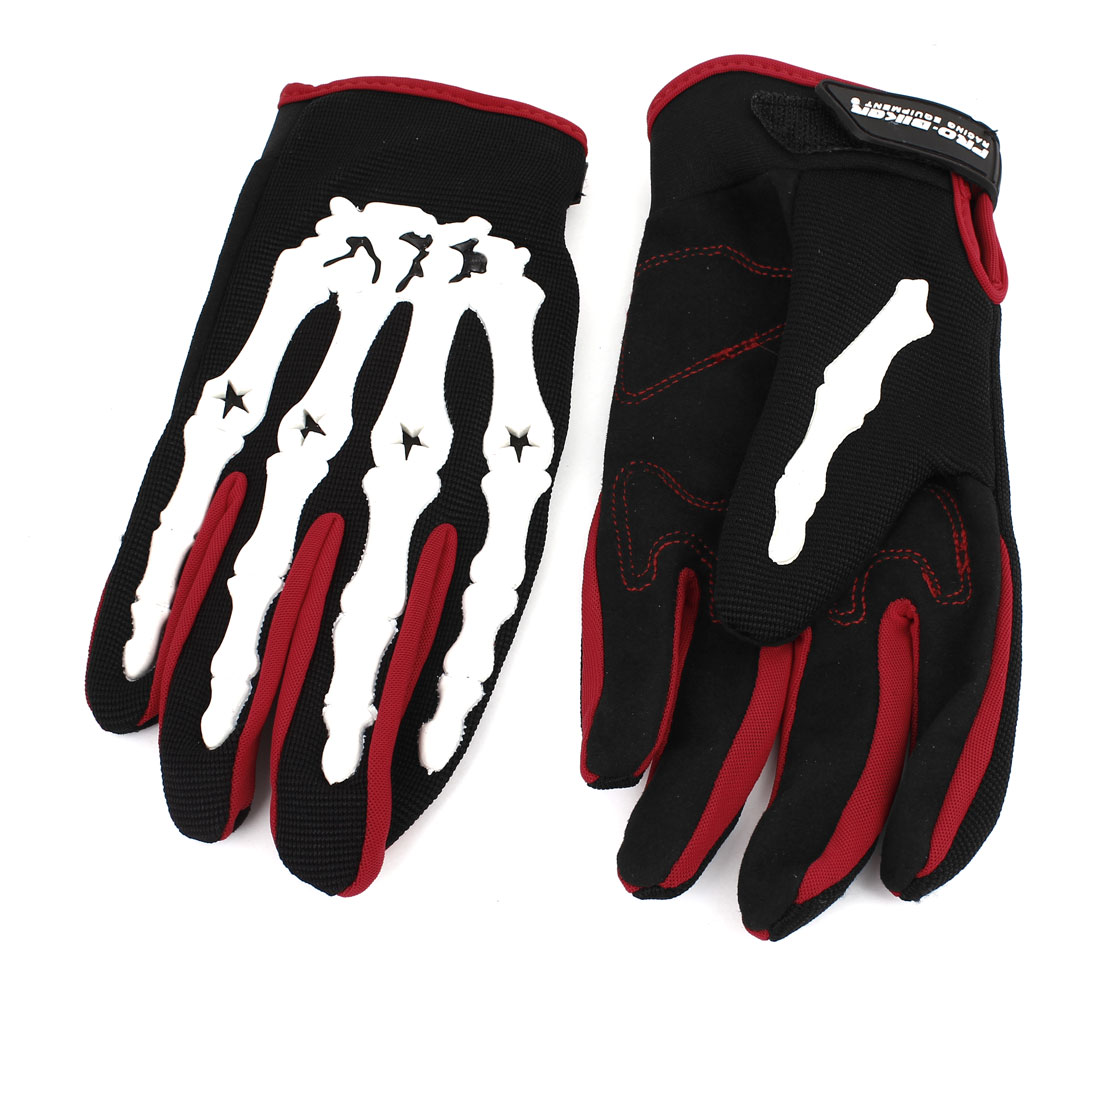 Pair Motorcycle Hook Loop Fastener White Hand Bone Printed Gloves Black Red Size L